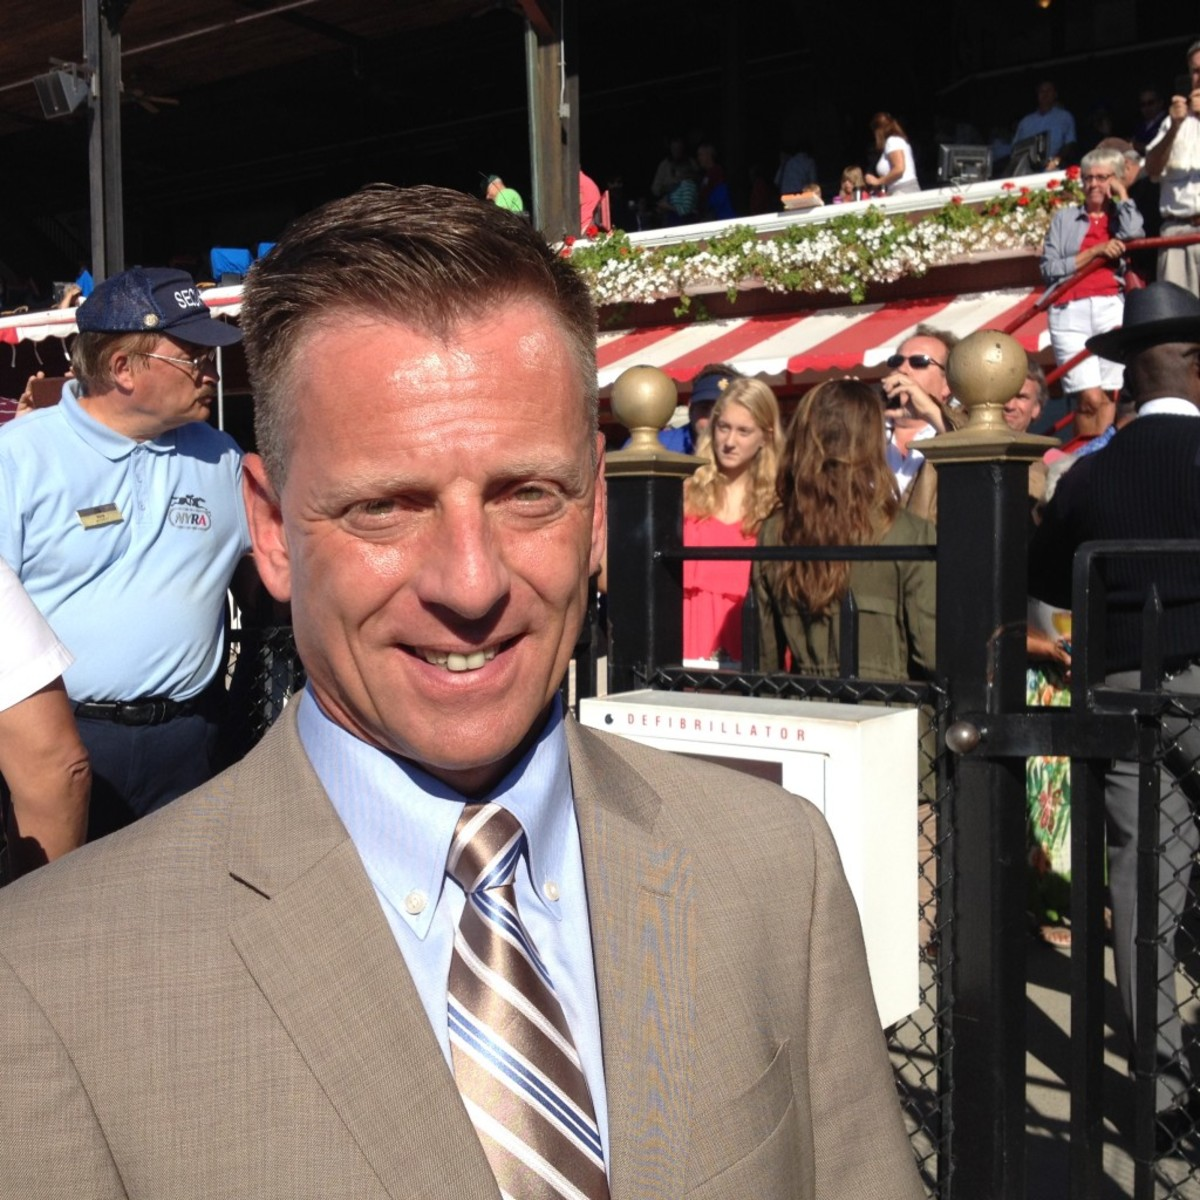 Richard 'the Mig' Migliore, a retired jockey and current Fox sportscaster, was overwhelmed by the response at Saratoga Race Course to American Pharoah.